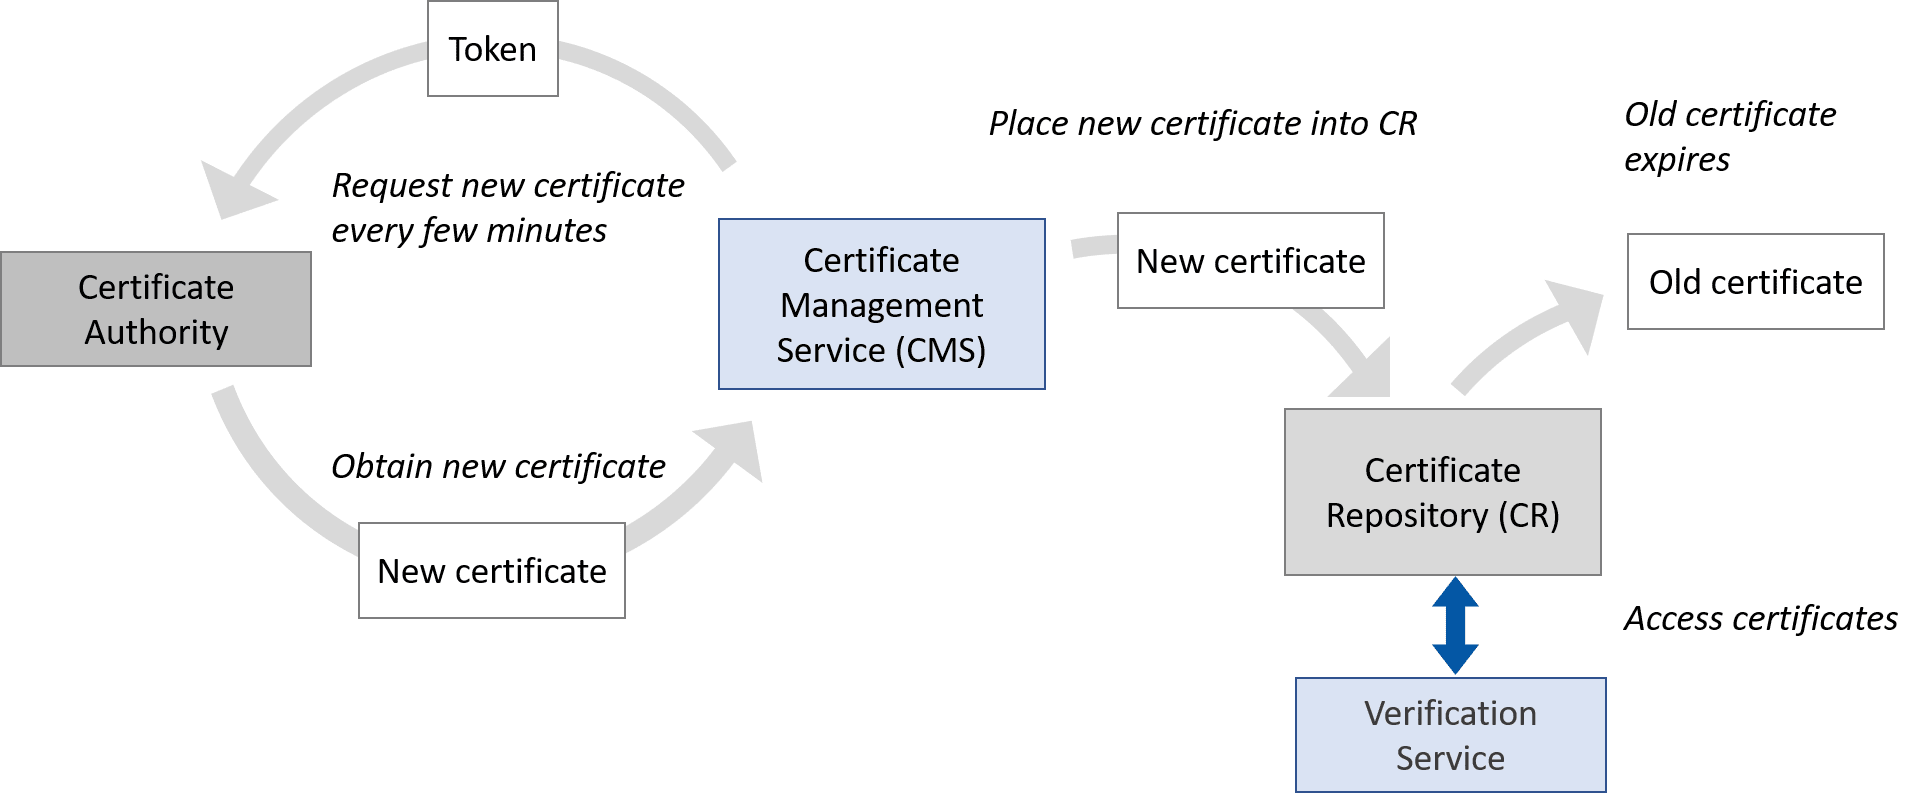 CMS requests new certificates every few minutes